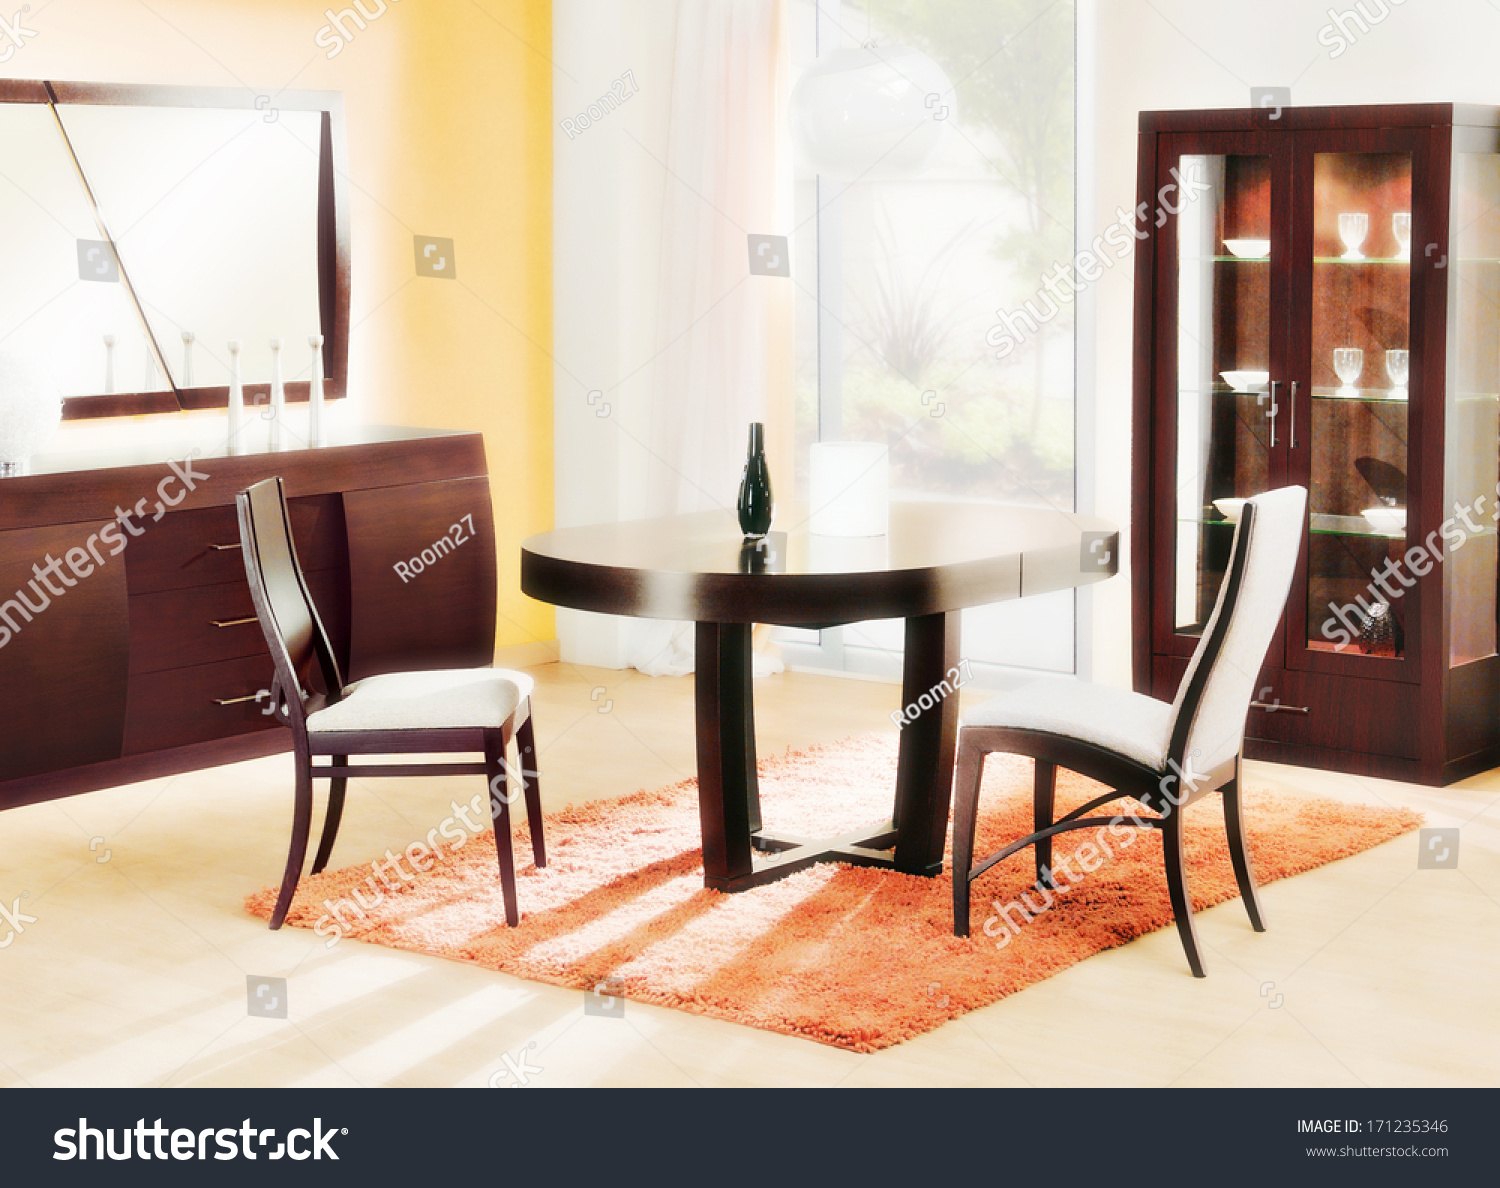 Dining Room Interior, Wooden Furniture, Dining Table, Chair Set, Garden  View,